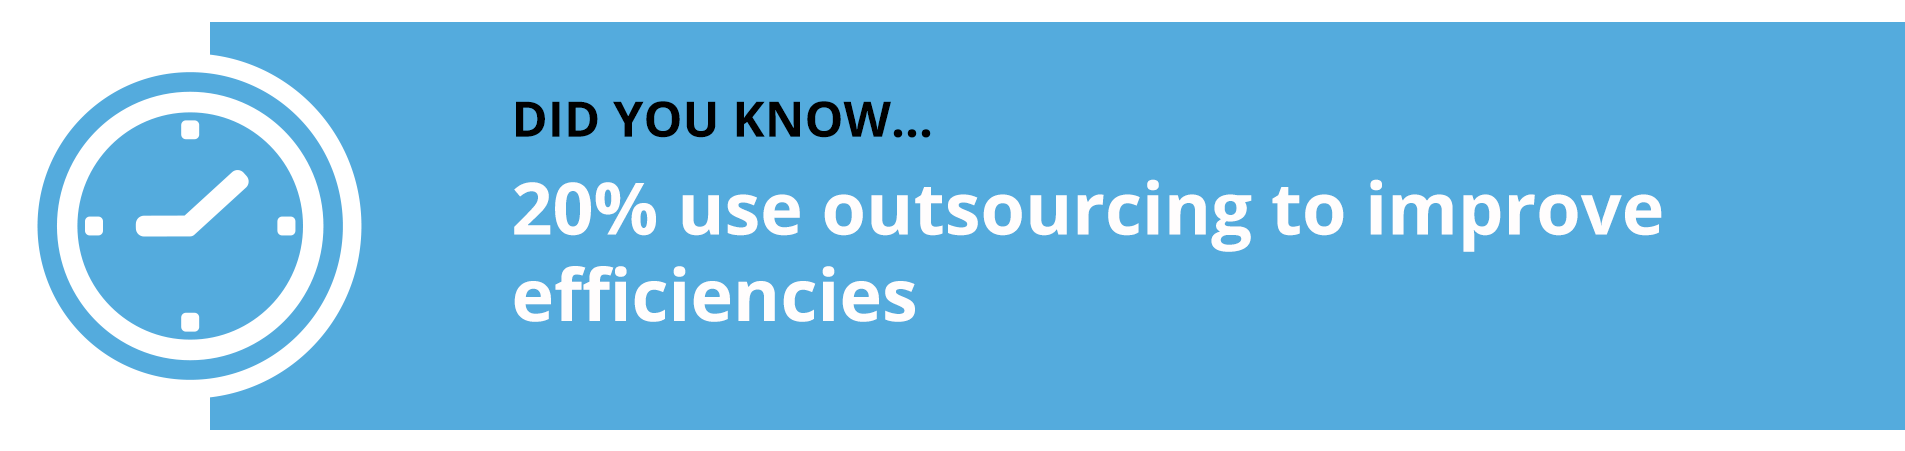 Outsourcing Quote